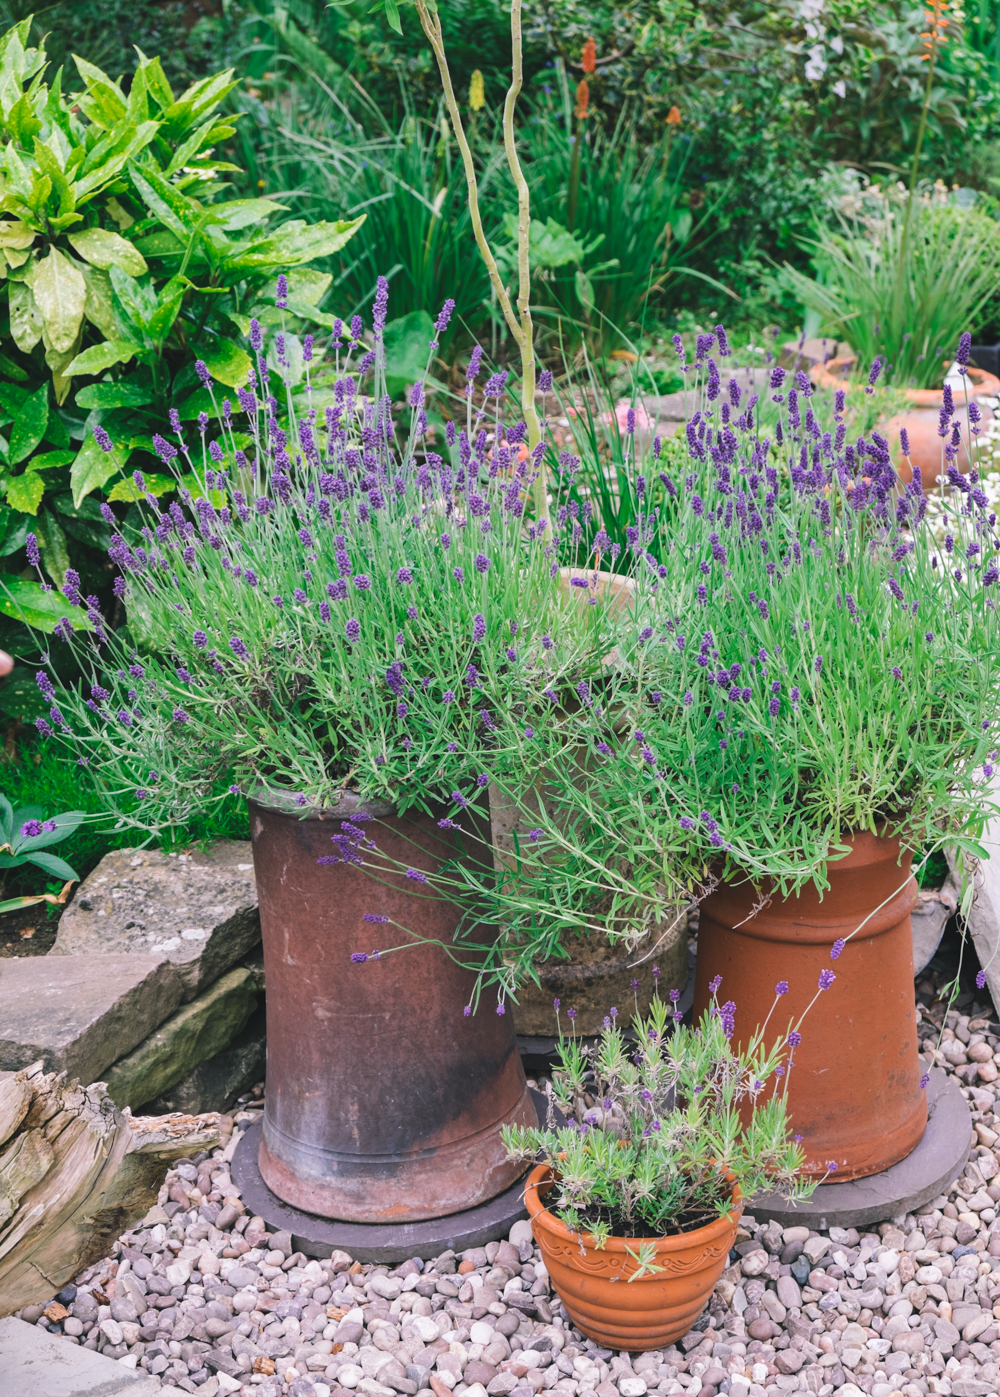 The difference between growing lavender in a deep pot and a shallow one